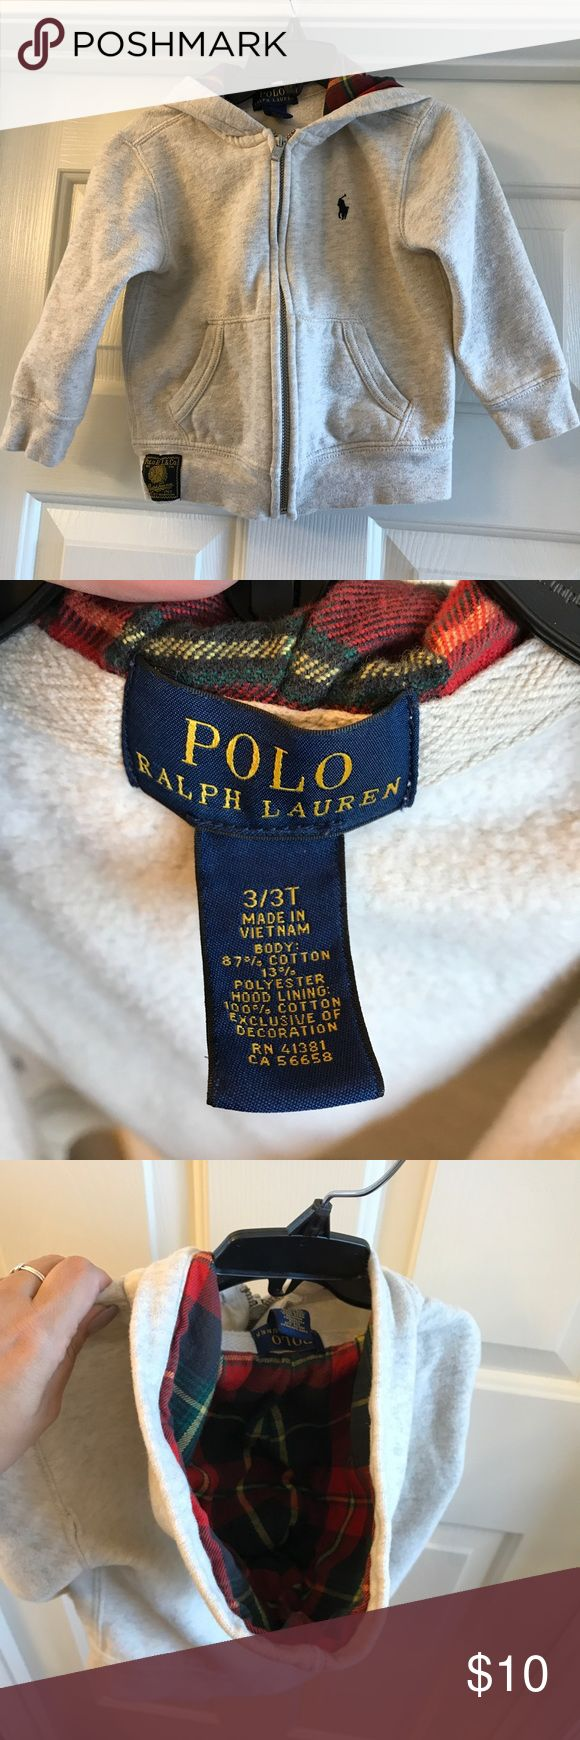 3t Polo Ralph Lauren hoodie zip up EUC. Only worn a couple of times. Has plaid in hood. Bundle and save! Polo by Ralph Lauren Shirts & Tops Sweatshirts & Hoodies